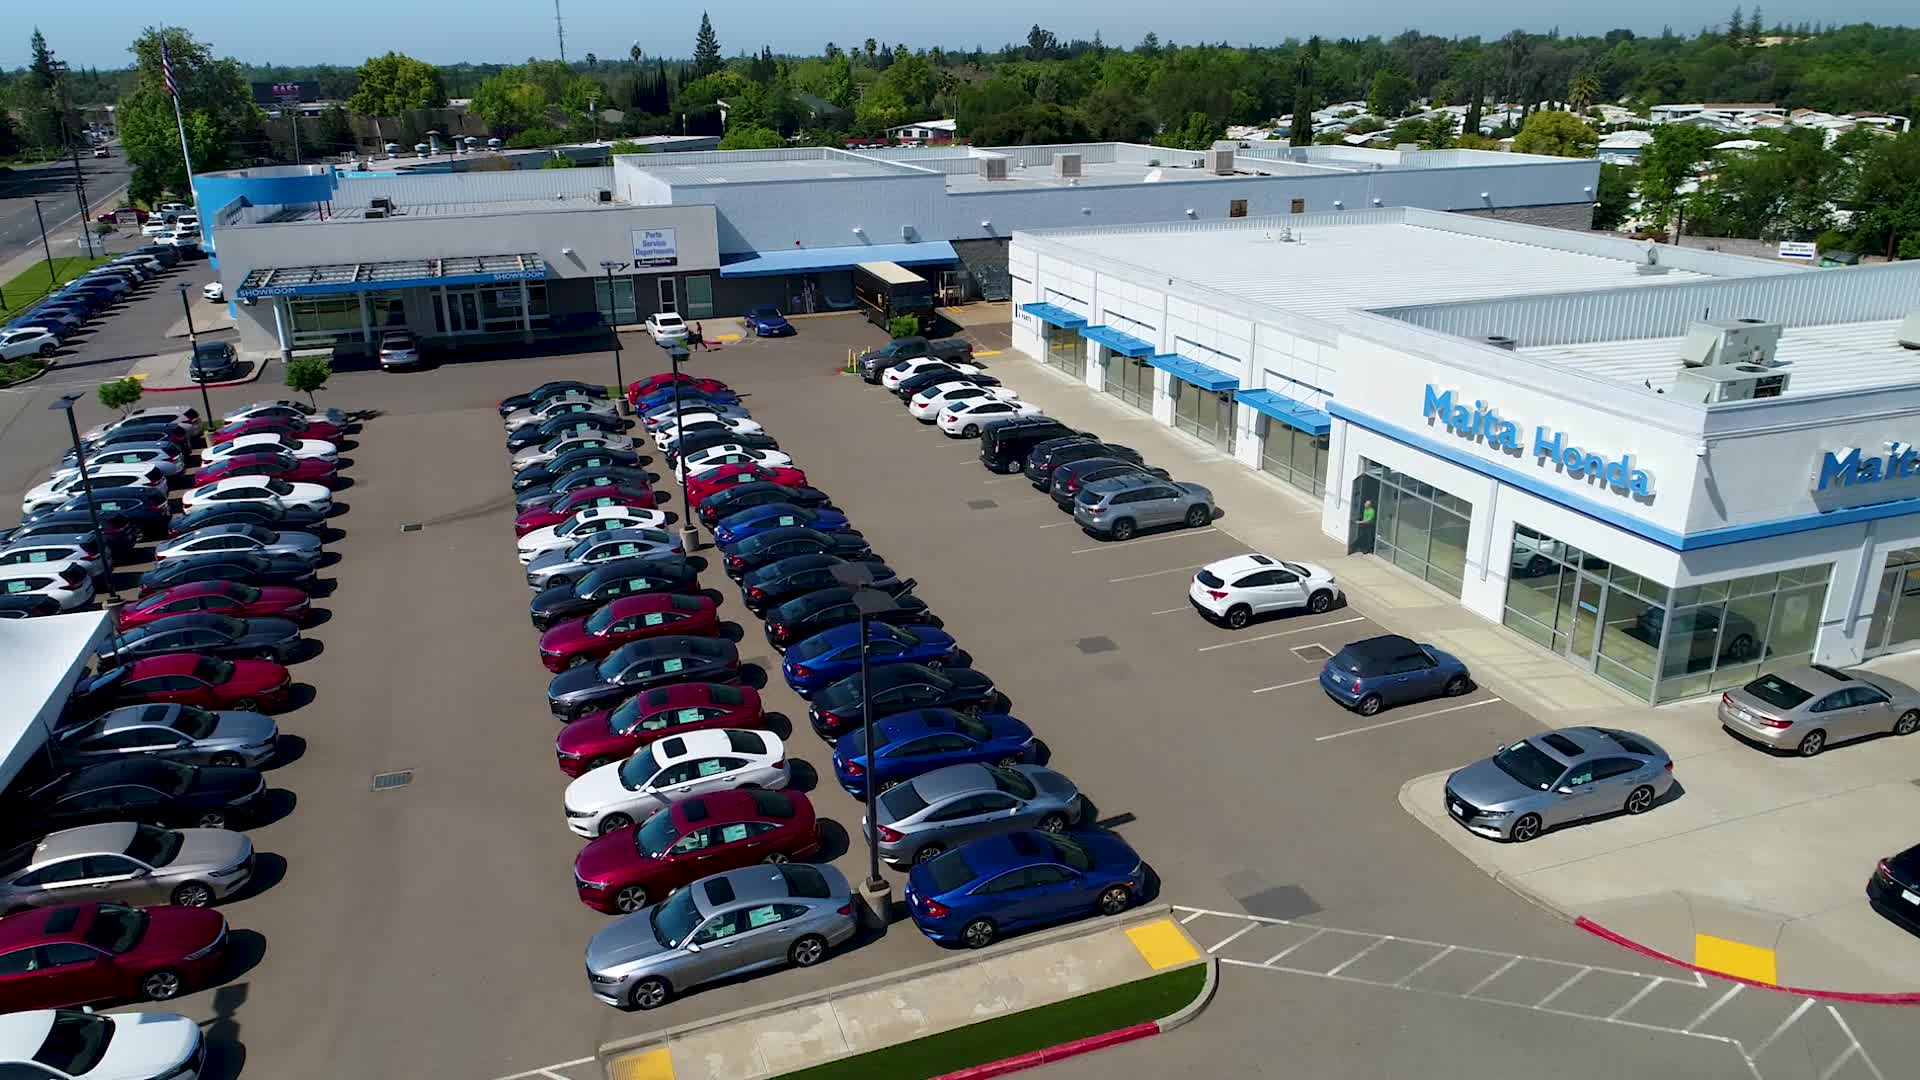 Honda Dealer Citrus Heights CA New U0026 Used Cars For Sale Near Sacramento CA    Maita Honda